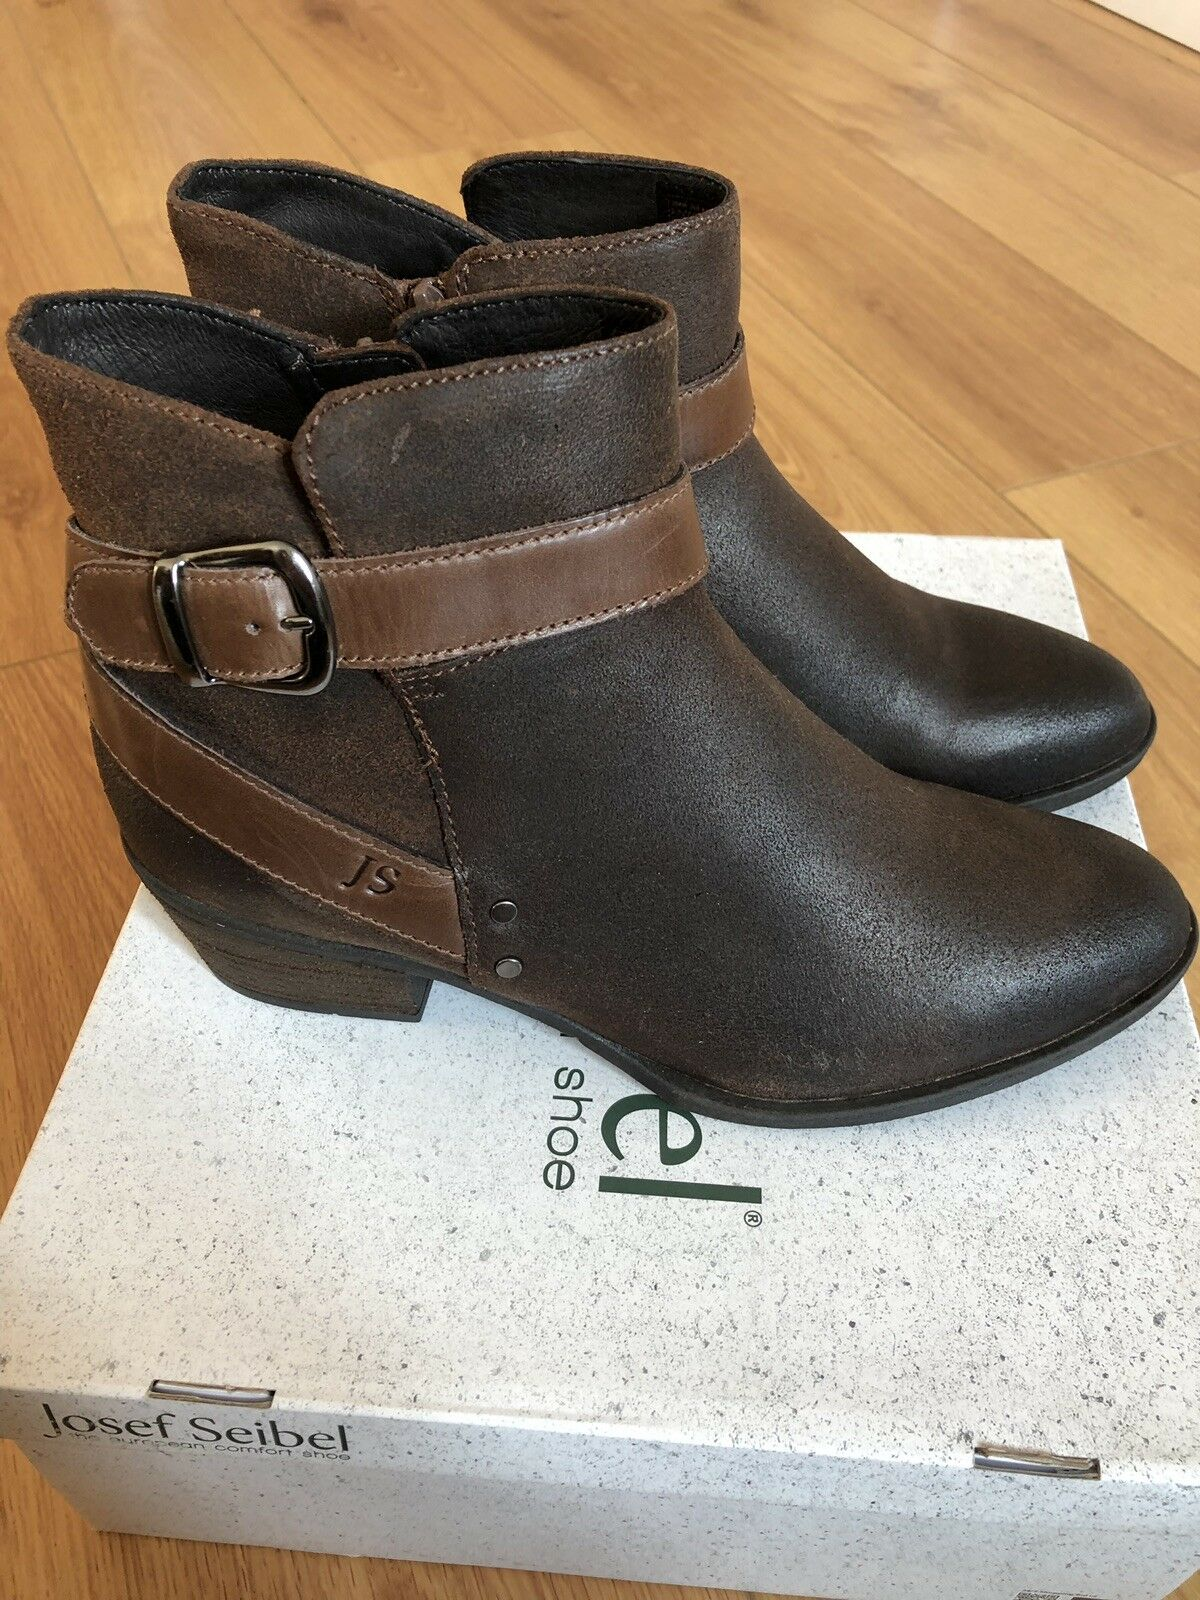 BRAND NEW JOSEF SEIBEL DAPHNE13 ladies fur ankle Stiefel-braun waxy leather UK 4 37